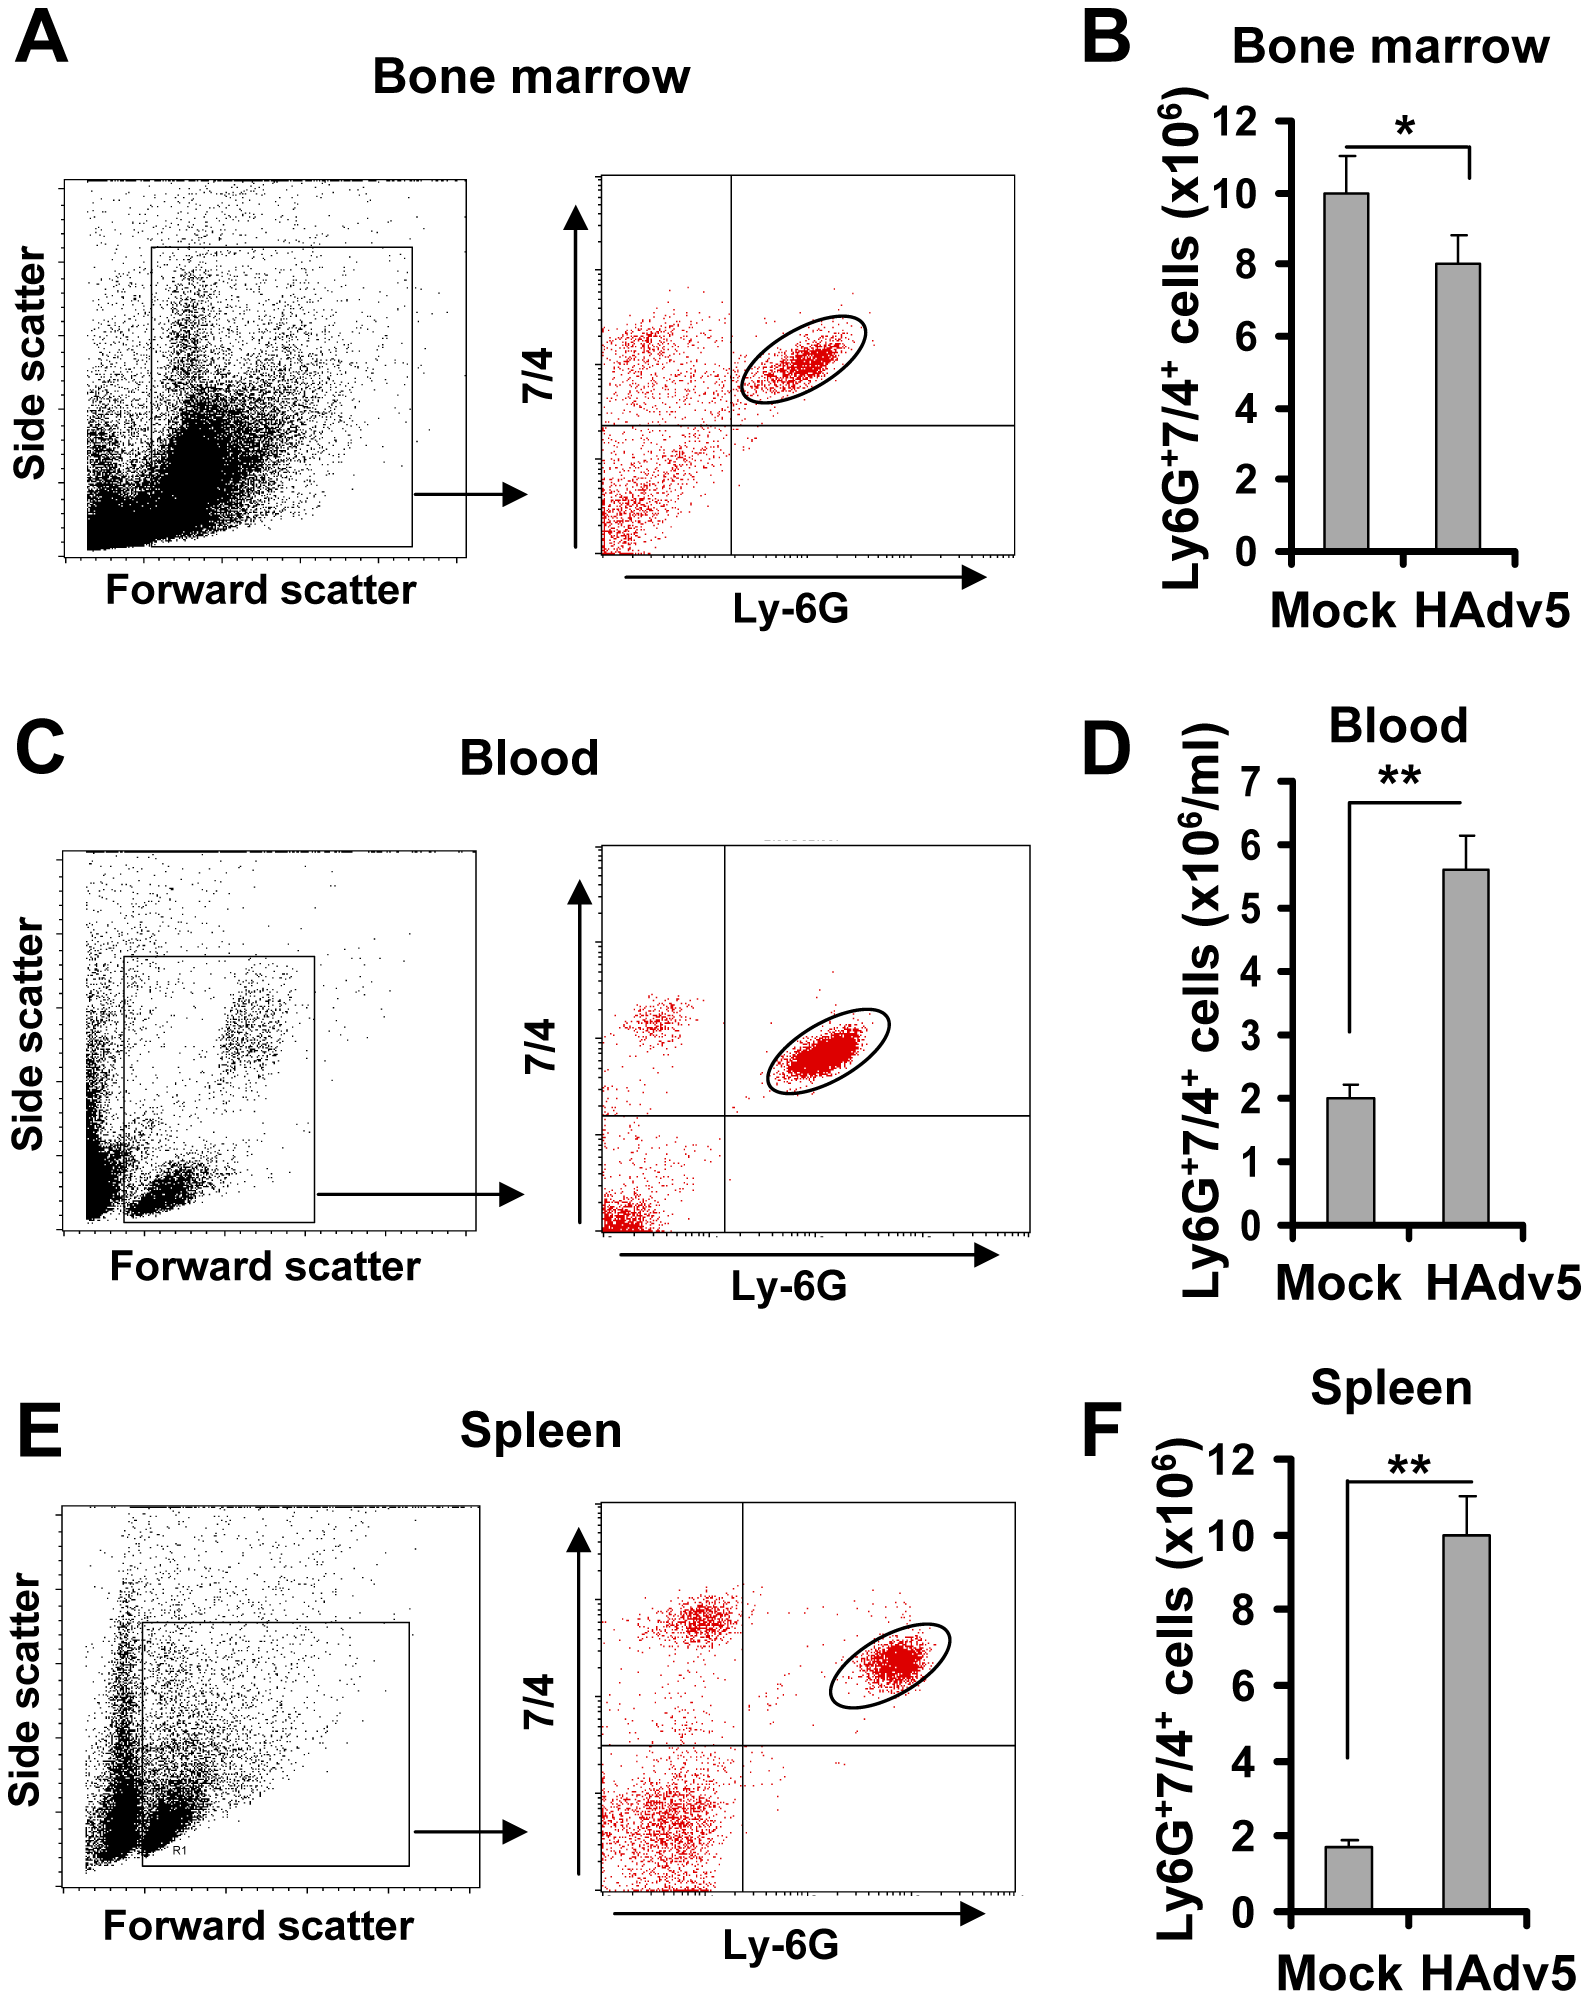 Intravascular adenovirus administration leads to the release of Ly-6G<sup>+</sup>7/4<sup>+</sup> polymorphonuclear leukocytes from bone marrow into the blood and their retention in the spleen.